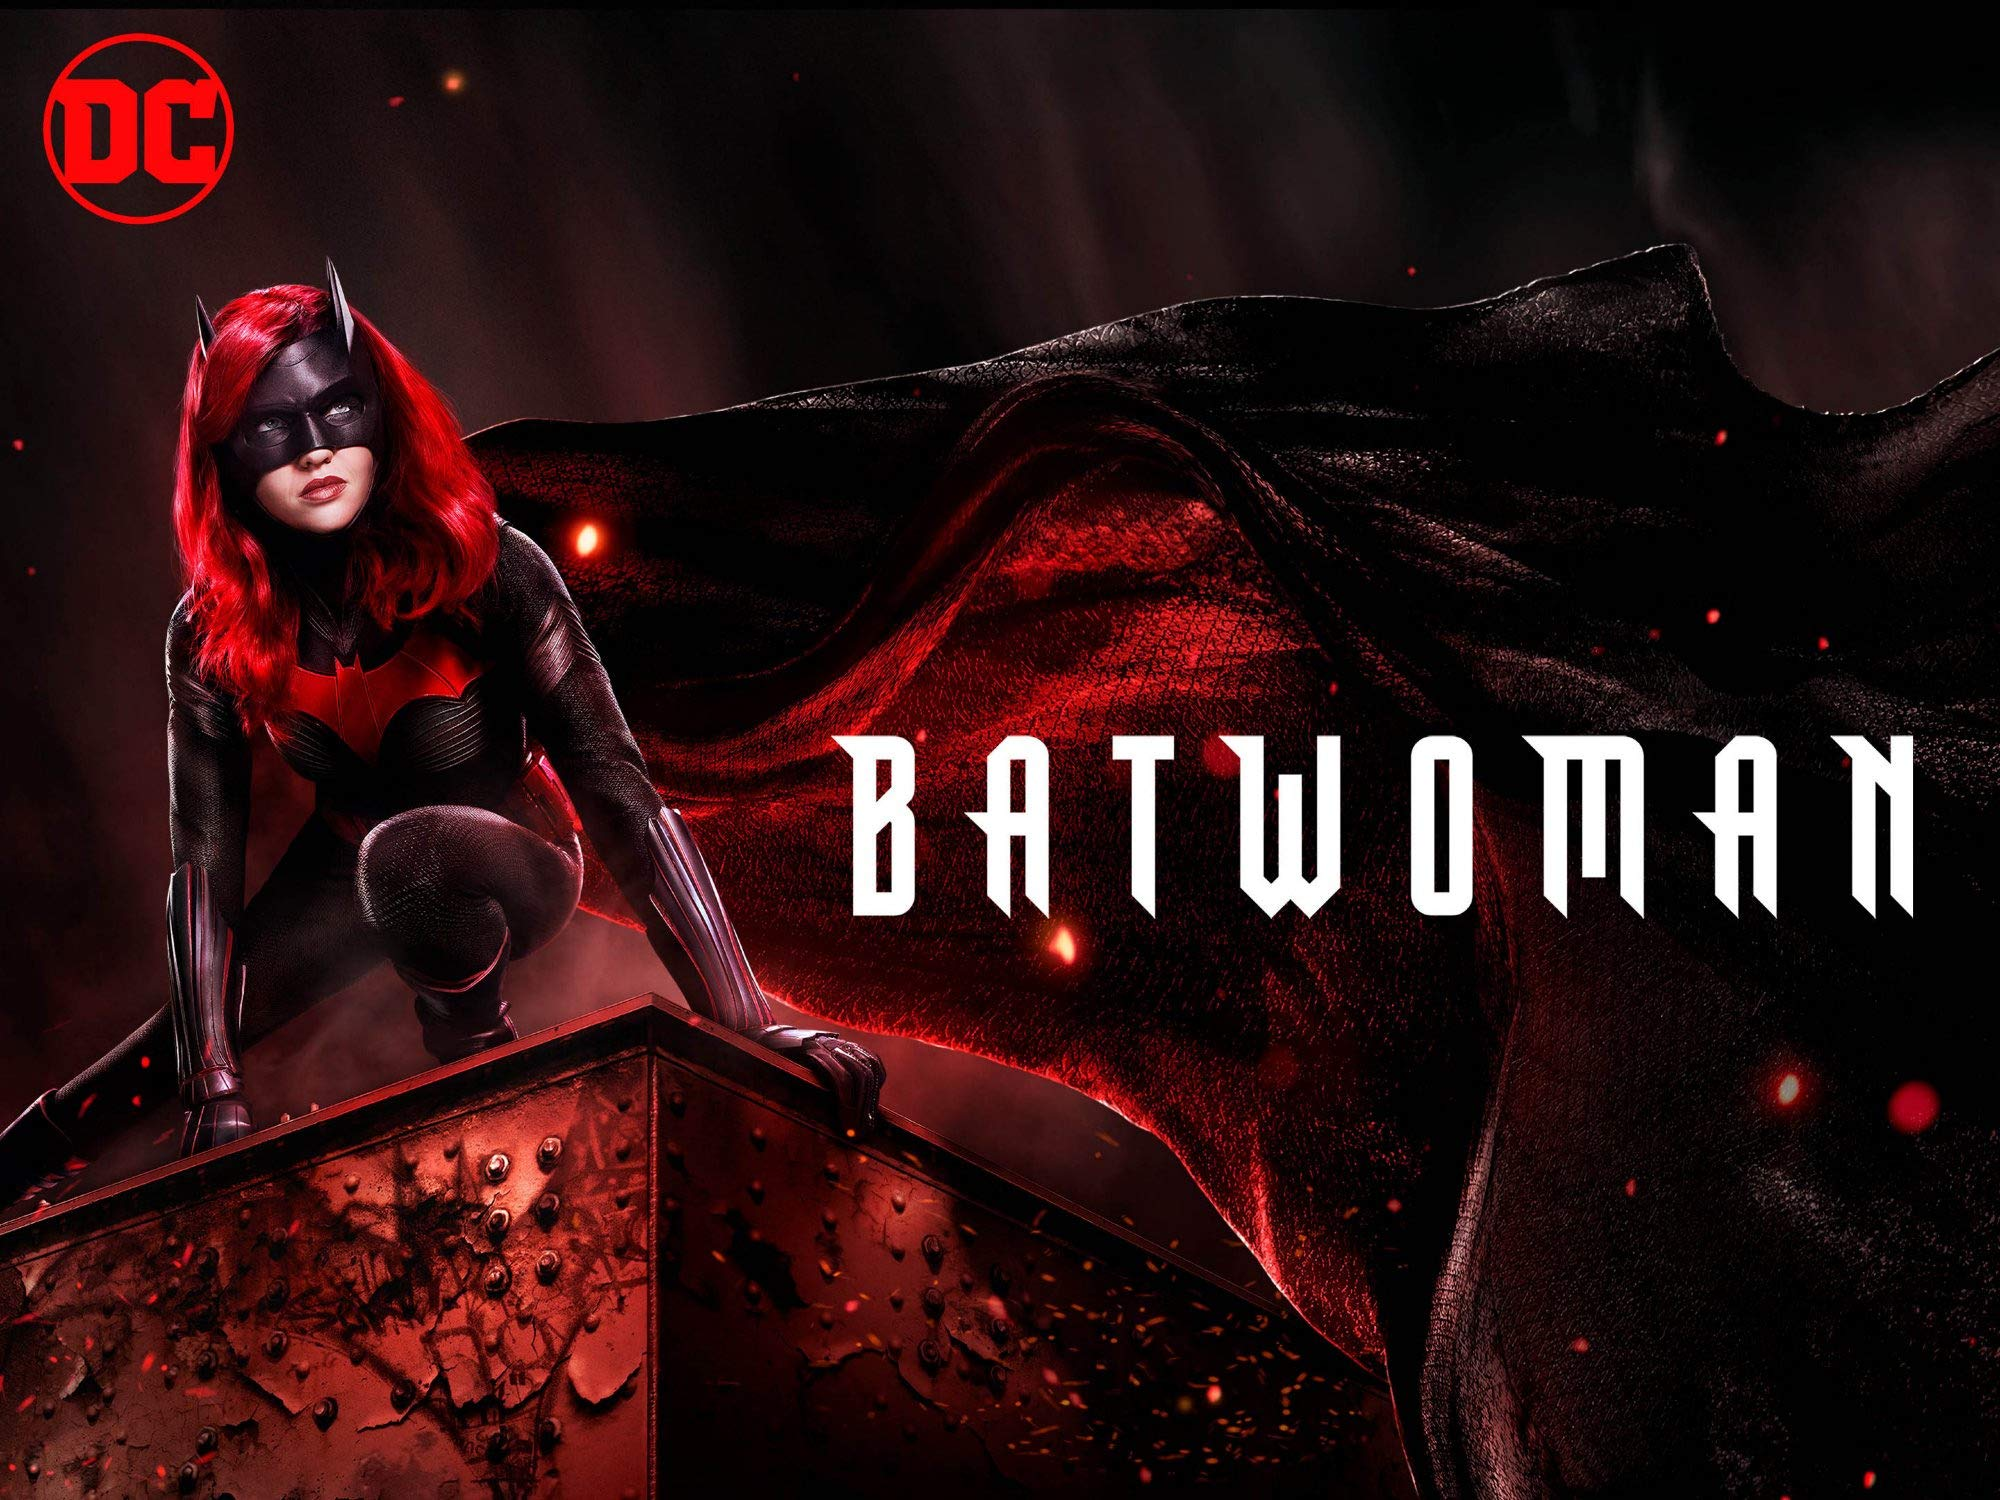 Batwoman Season 2 Episode 10: Release Date, Synopsis, Preview - All You Need To Know